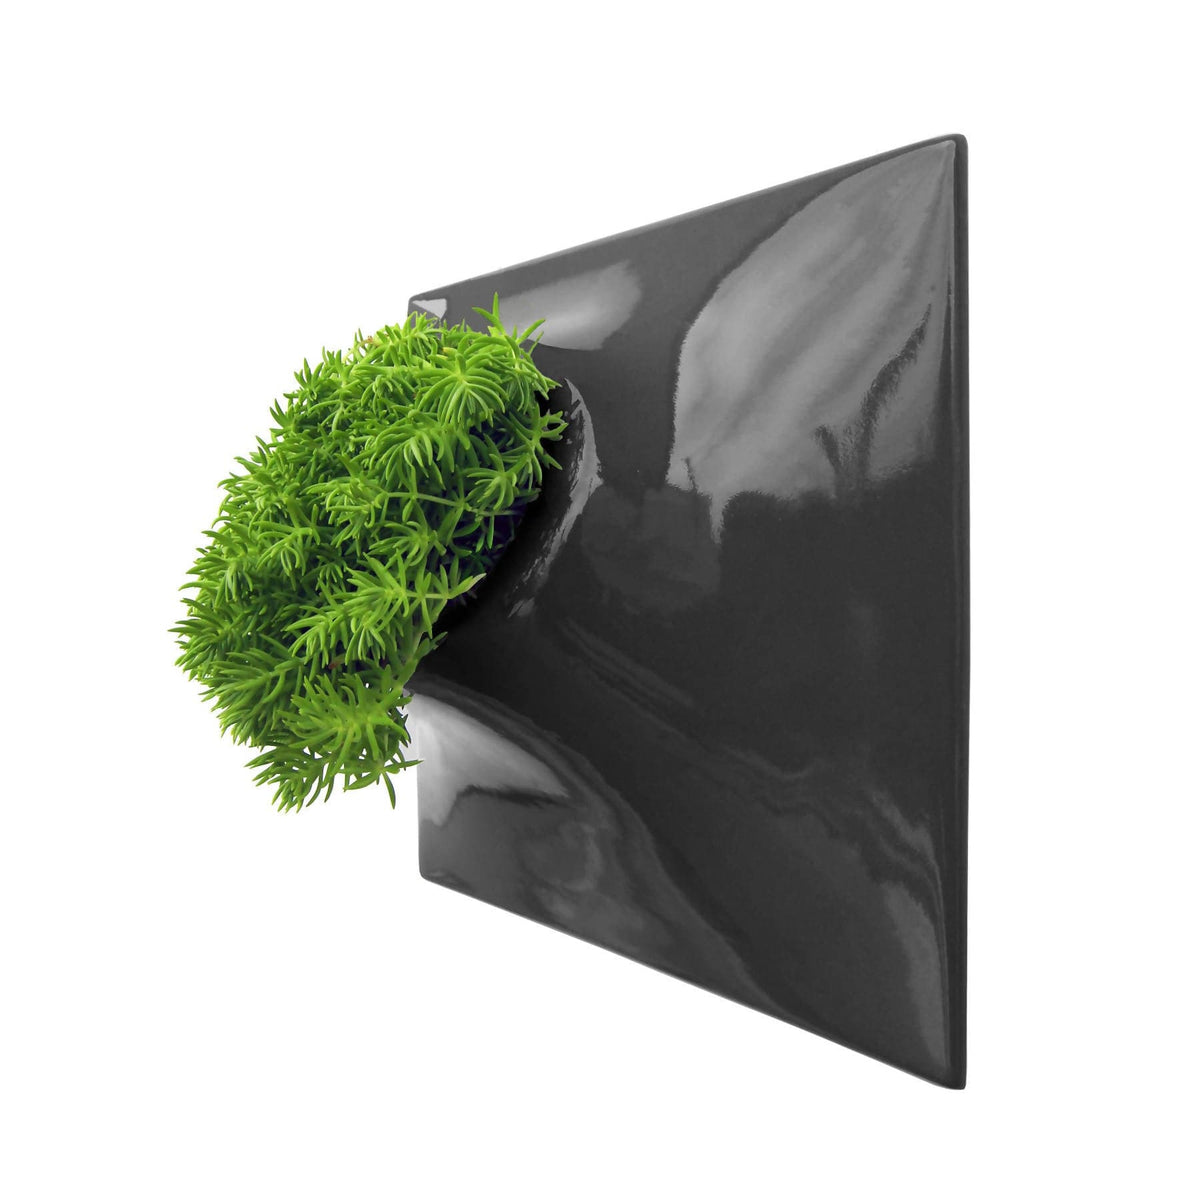 "Node 12"" Wall Planter Dark Gray"